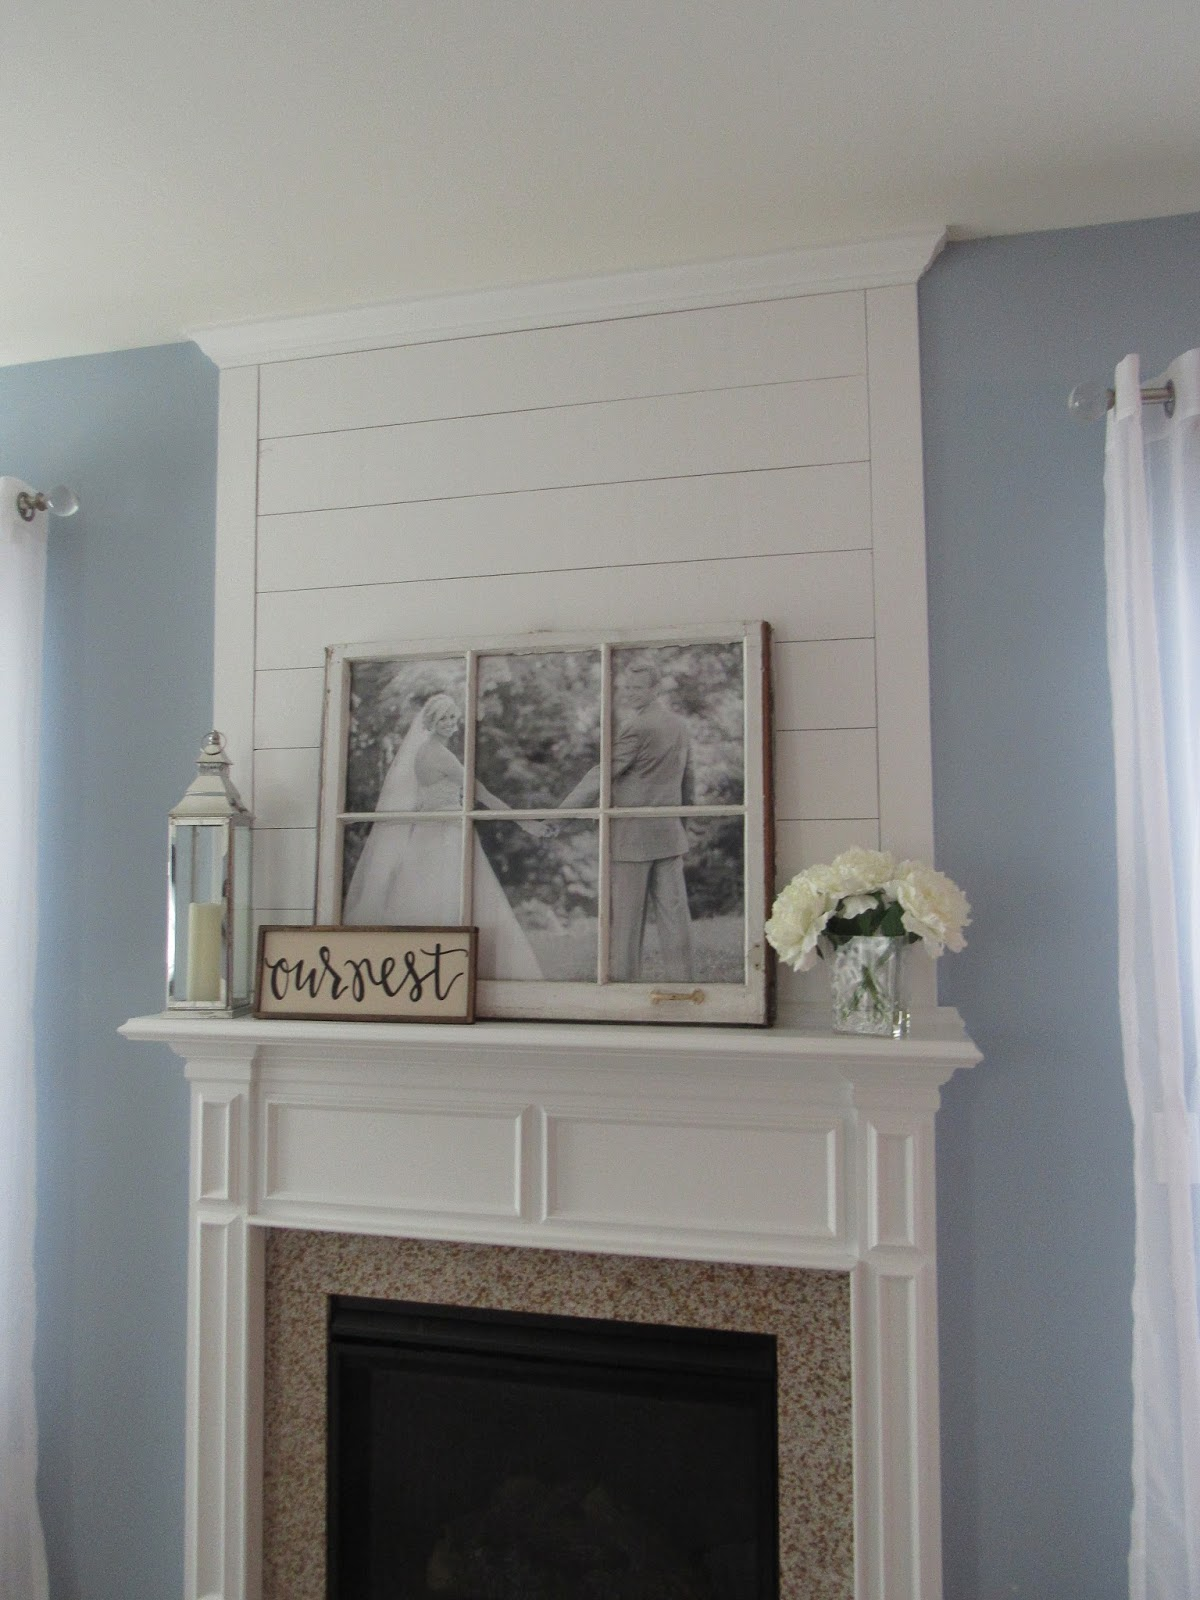 Brand-new My Old Kentucky Home Design: DIY Shiplap Fireplace Makeover LB61